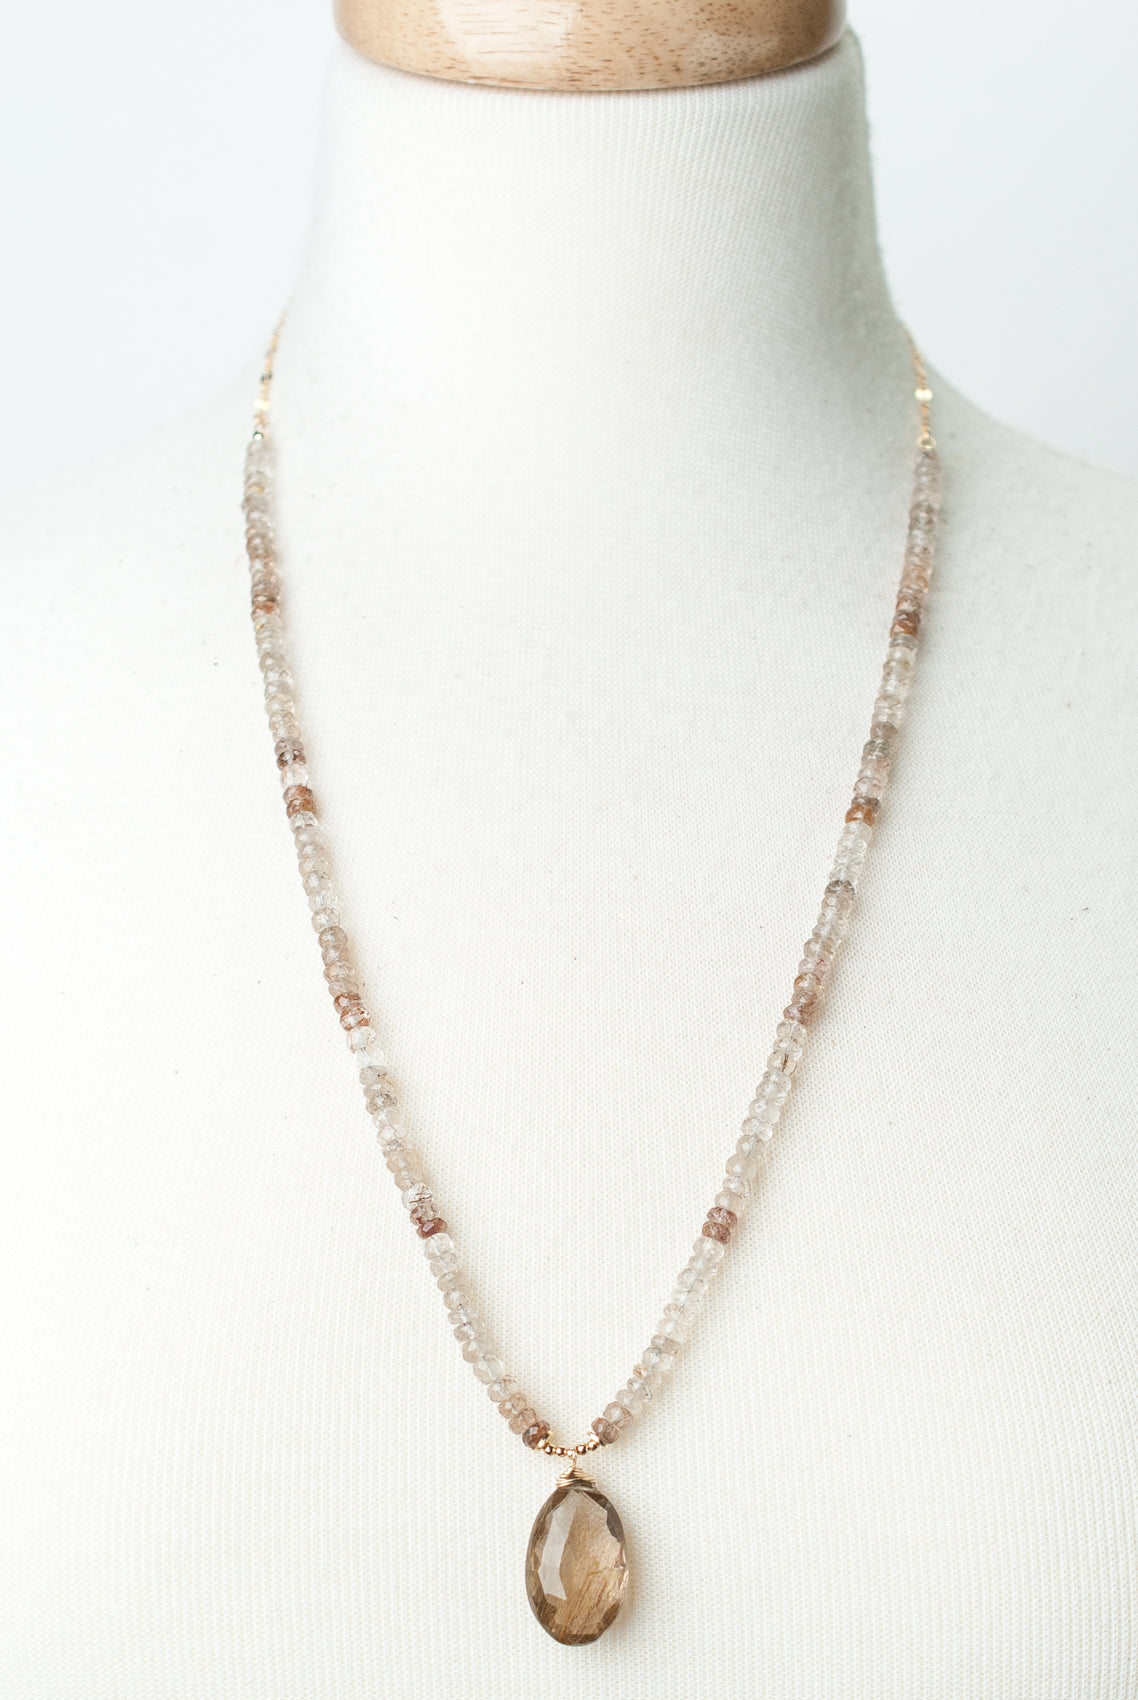 "One of a Kind 25-27"" Golden Rutilated Quartz Focal Necklace"